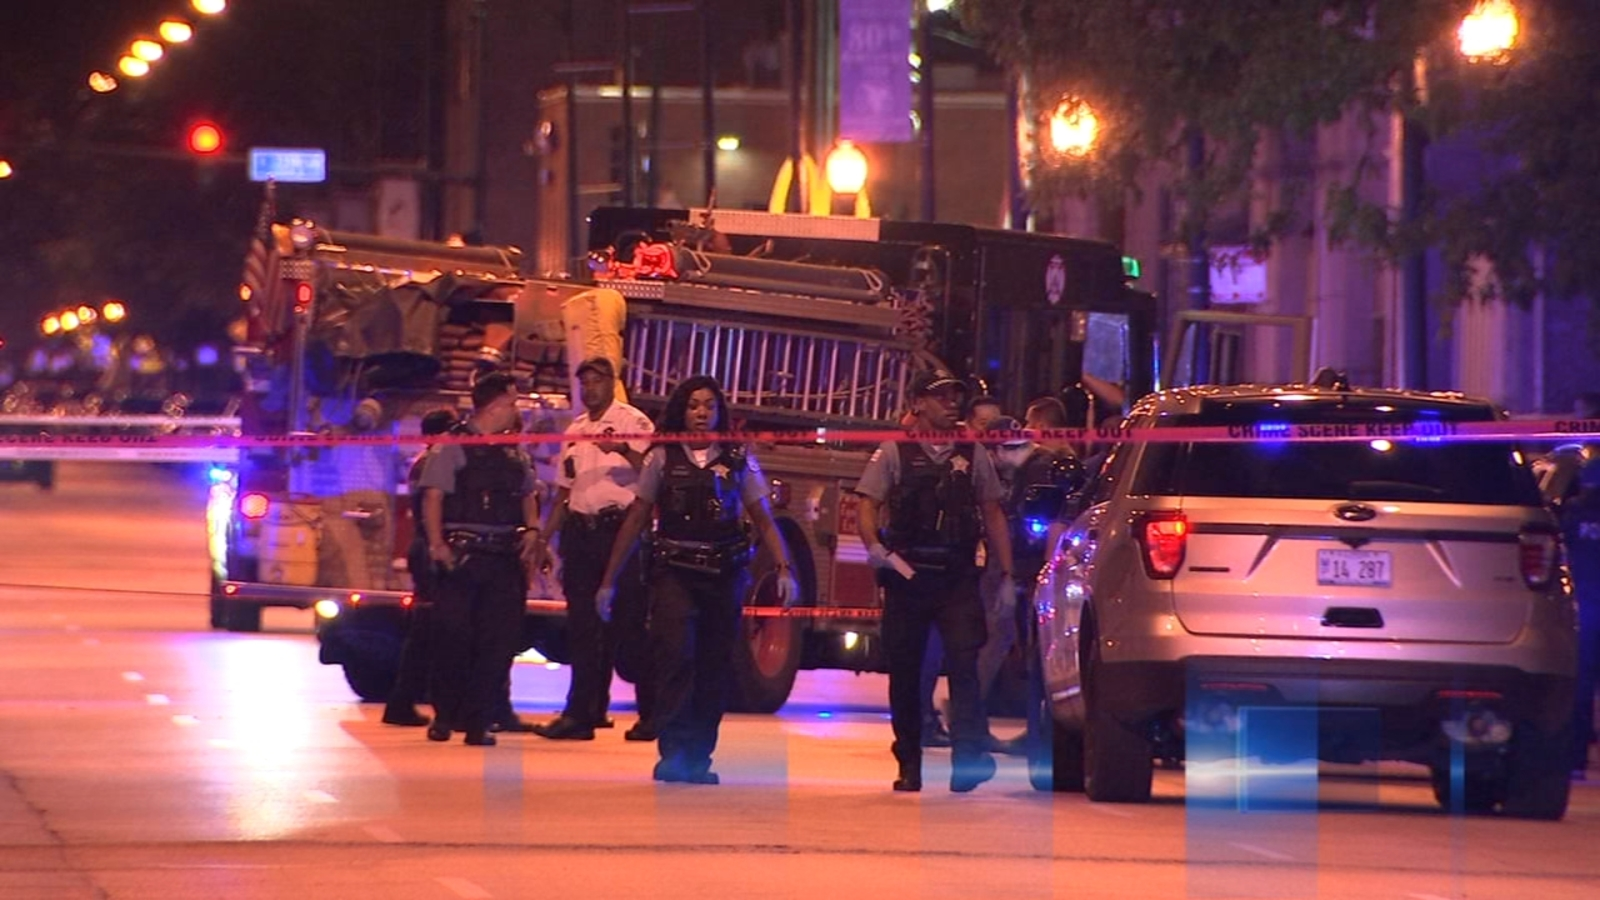 27 shot, 8 fatally, in Chicago weekend violence